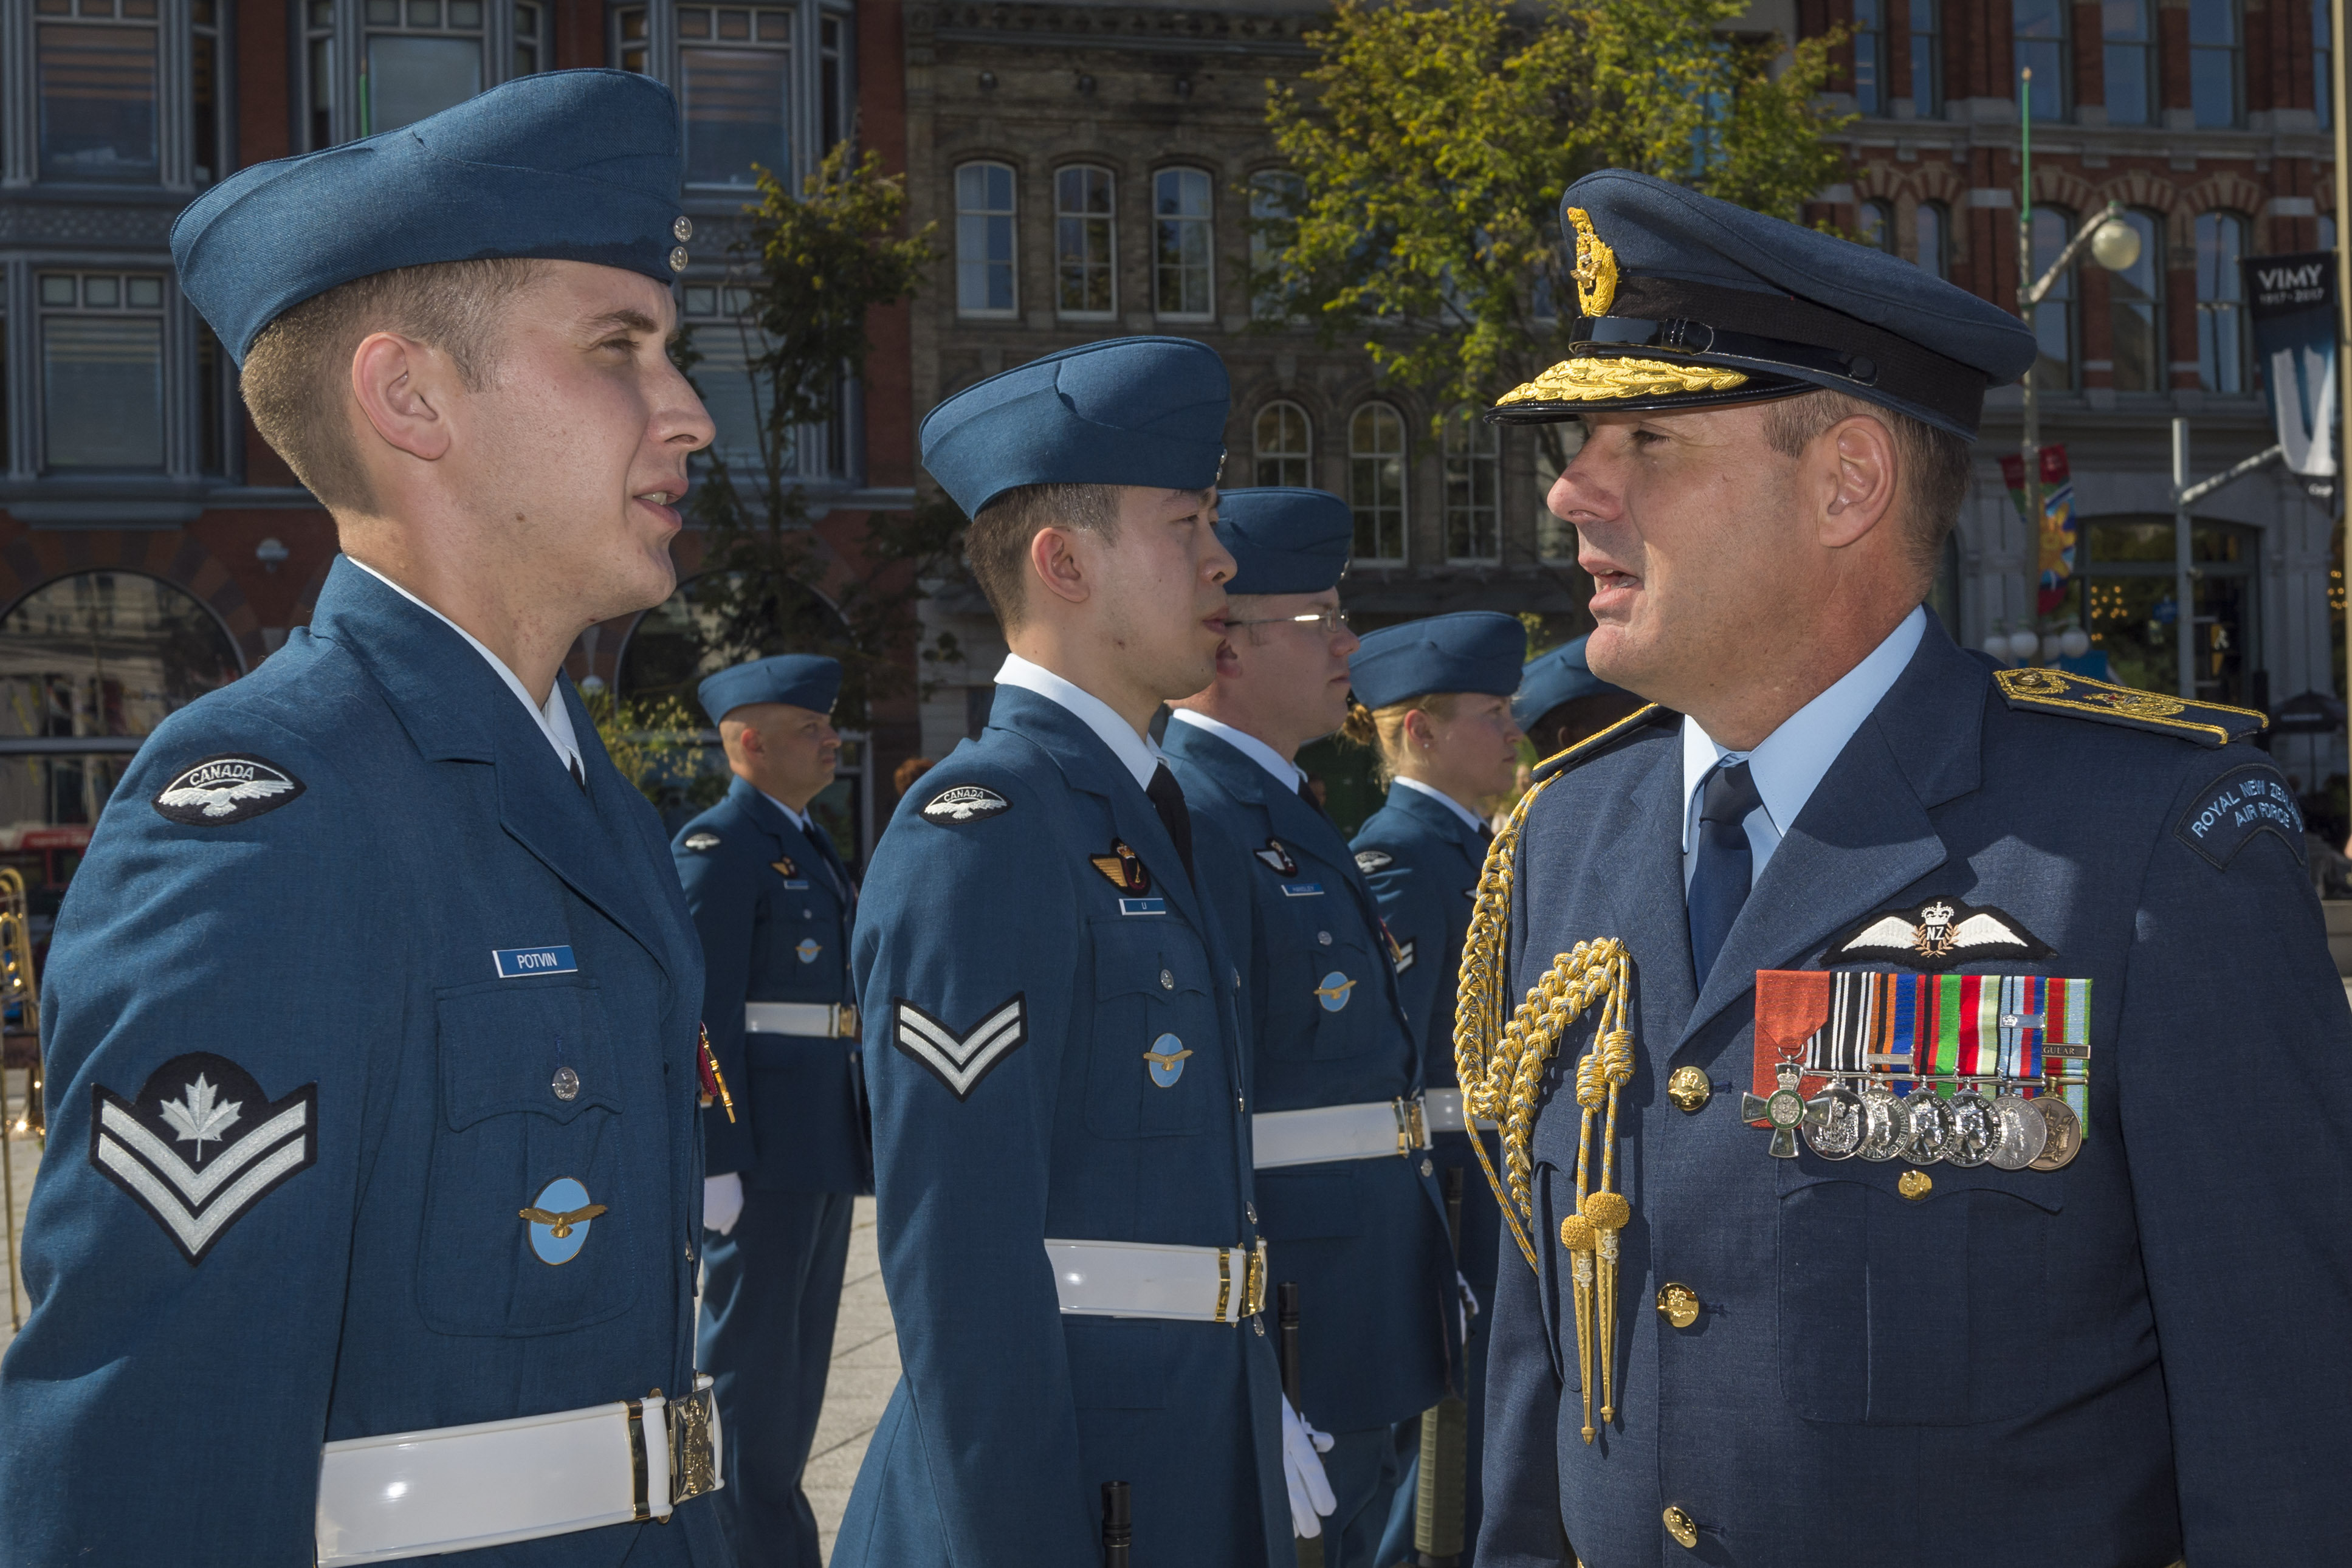 Several people wearing blue air force uniforms